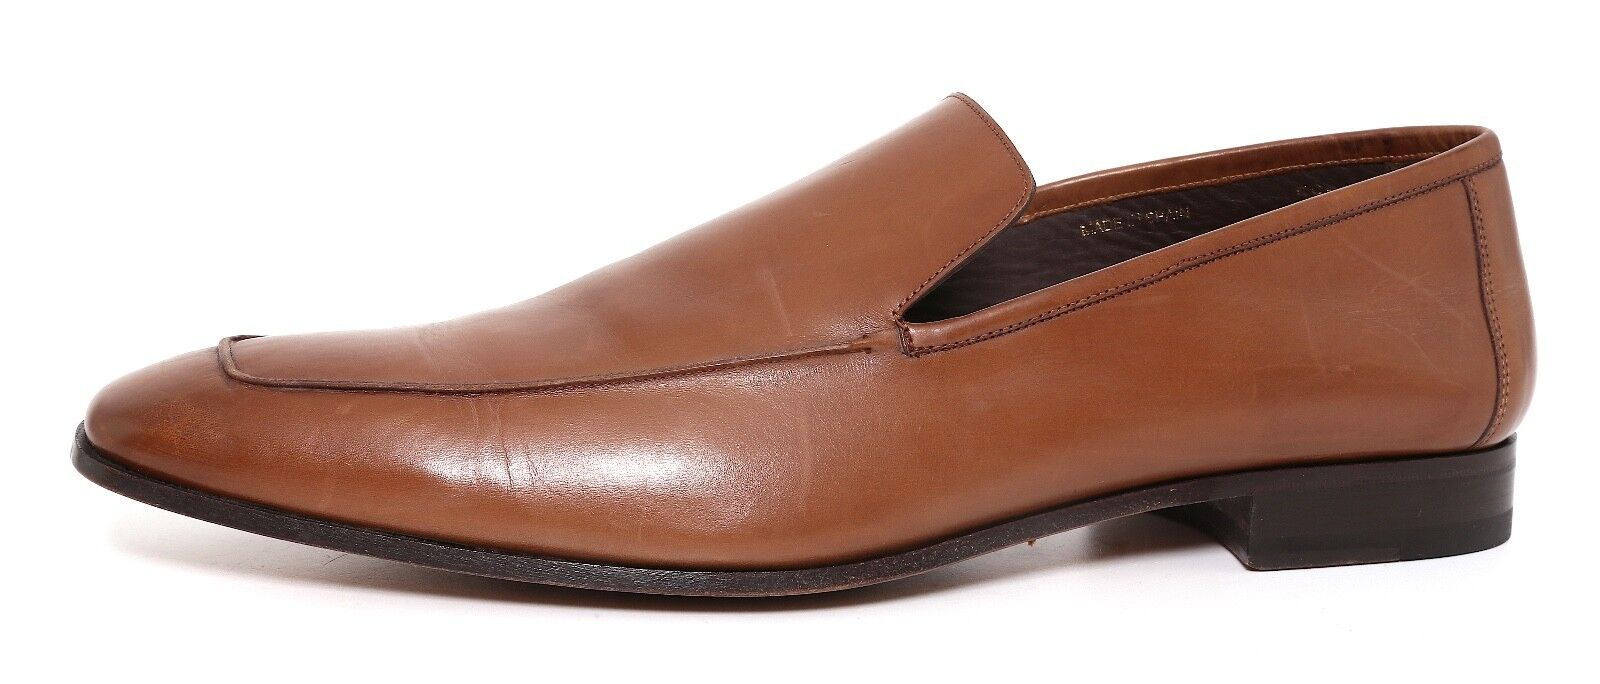 Mezlan Square Toe Slip On Leather Loafer Brown Men Sz 11.5 M 3211